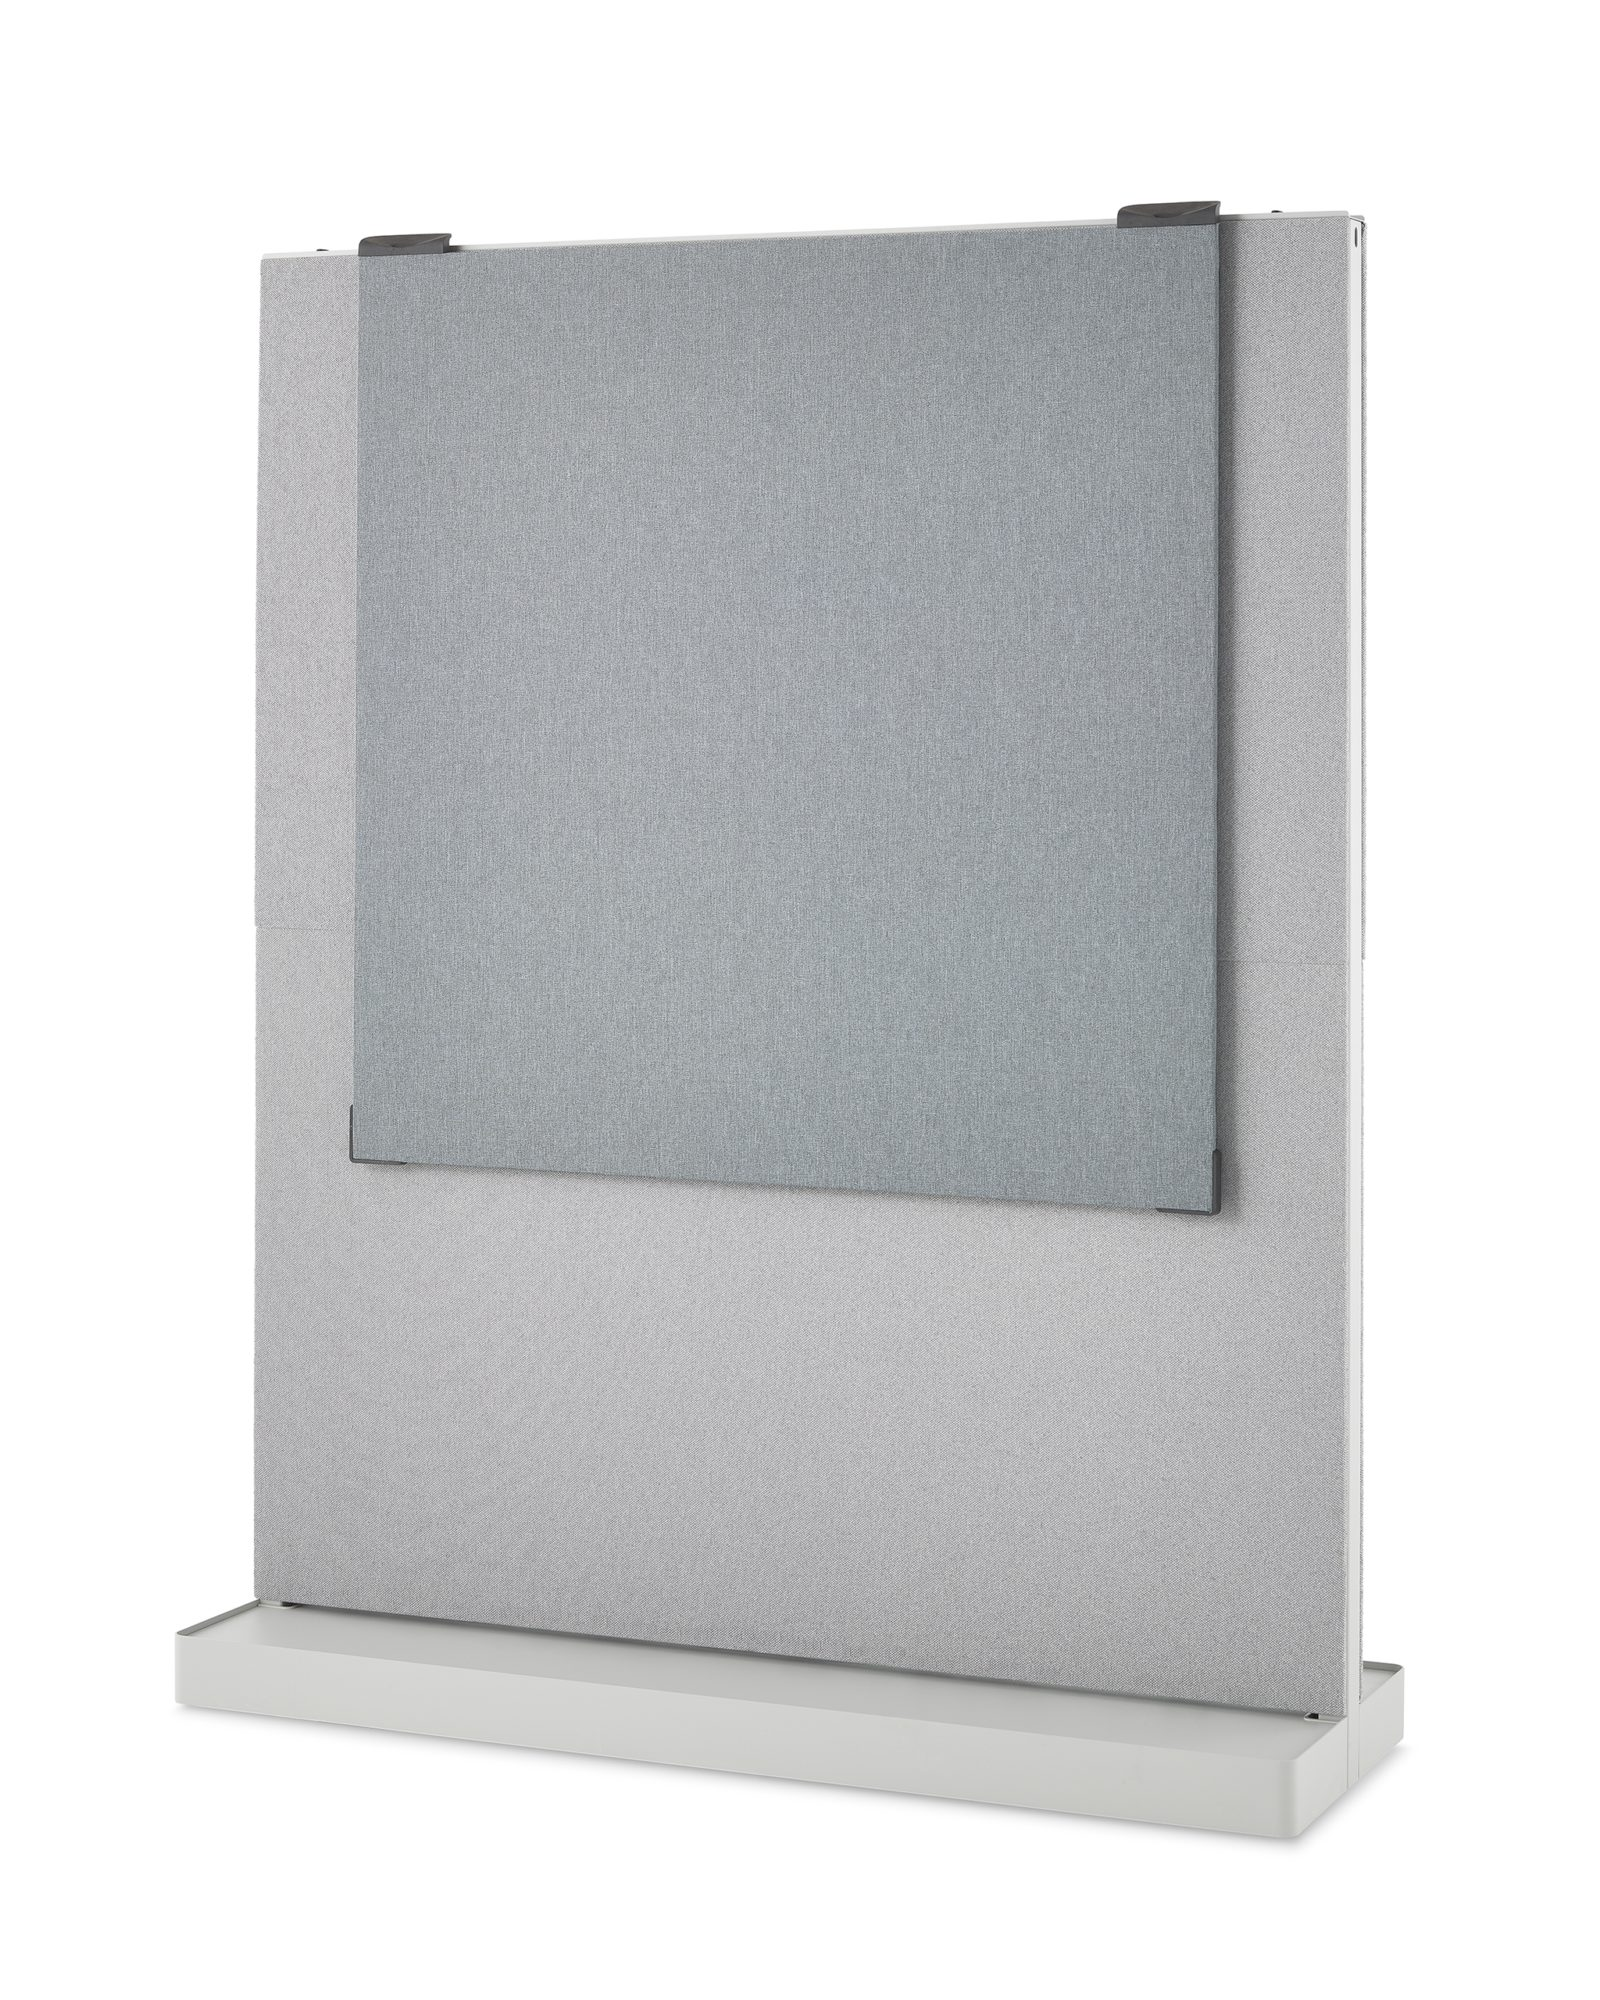 An Agile Wall with one large light grey tackable fabric tile with an Exclave dark grey tackable fabric tile hung from the top of the Agile Wall frame.